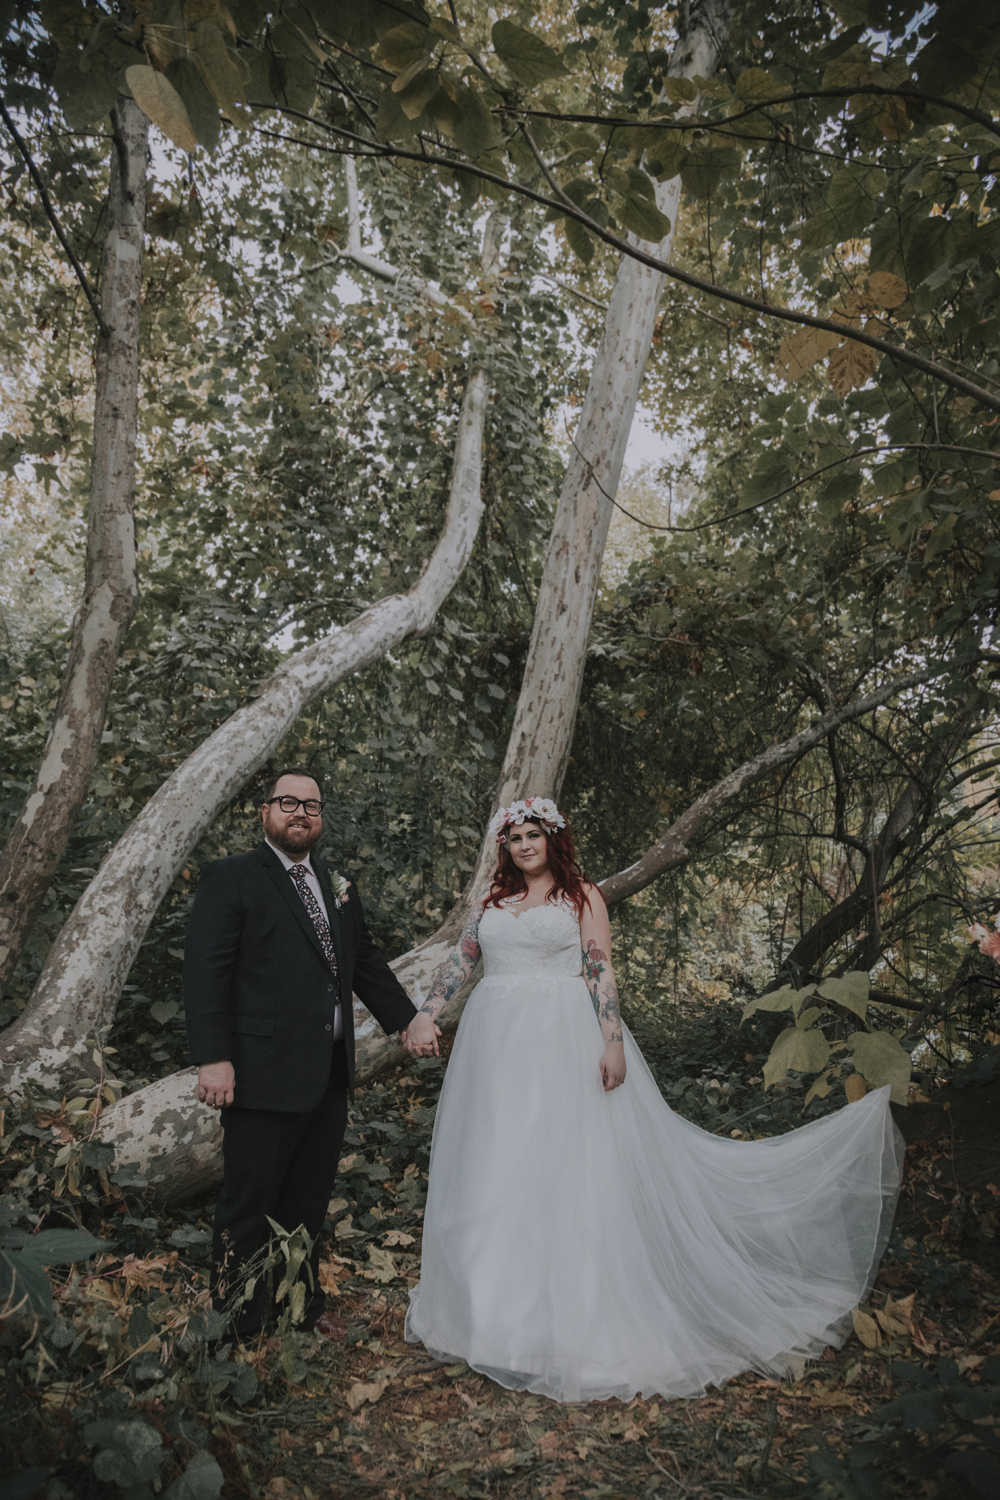 1Wedding-photographer-at-Creekside-Rose-Garden-Chico-CA3-2.jpg